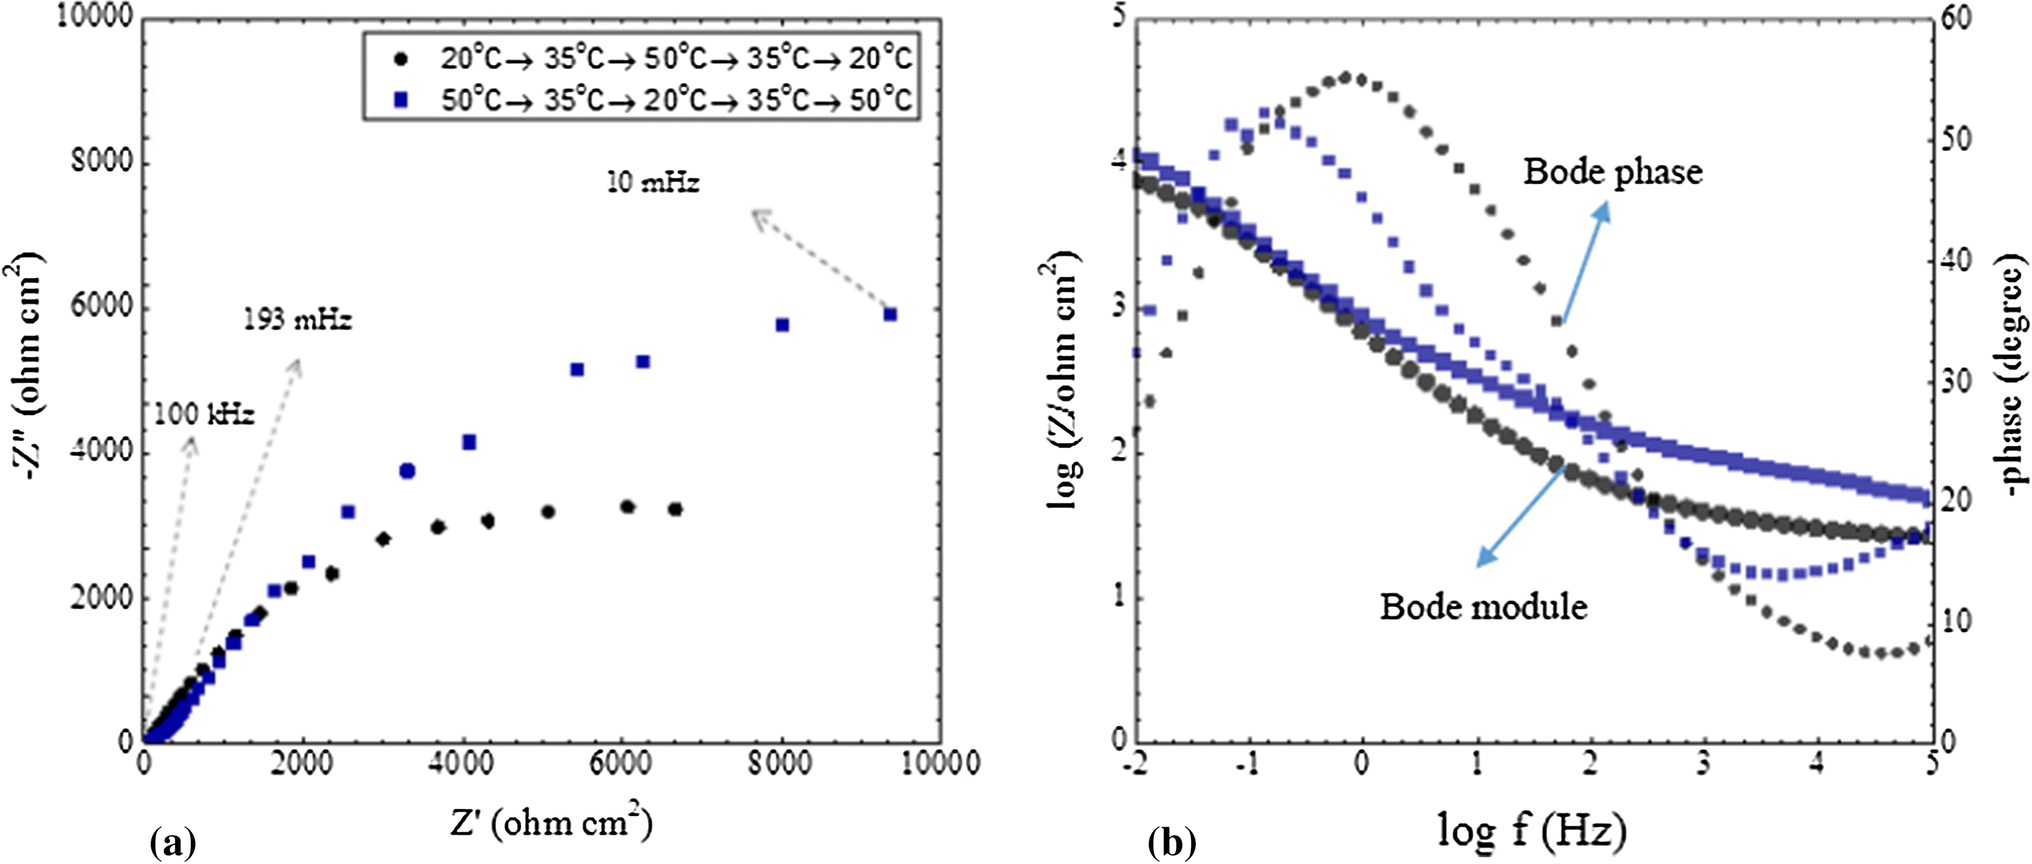 Influence of Temperature Variation on the Formation and